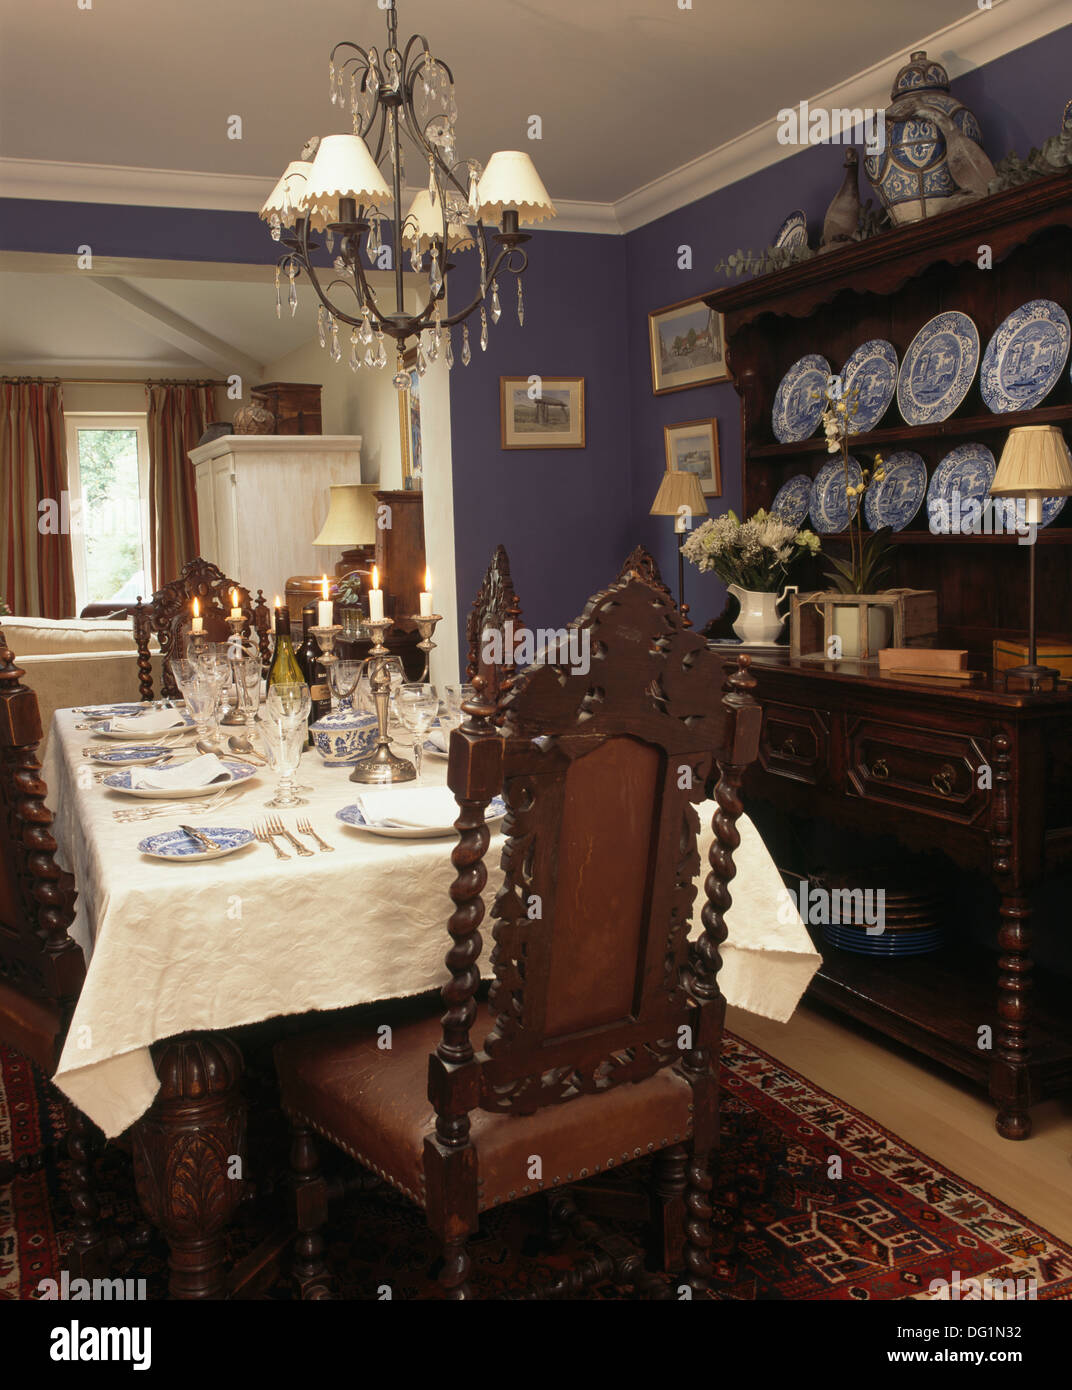 Antique Jacobean Style Chairs And Oak Dresser In Blue Dining Room With Chandelier Above Table White Cloth Laid For Dinner